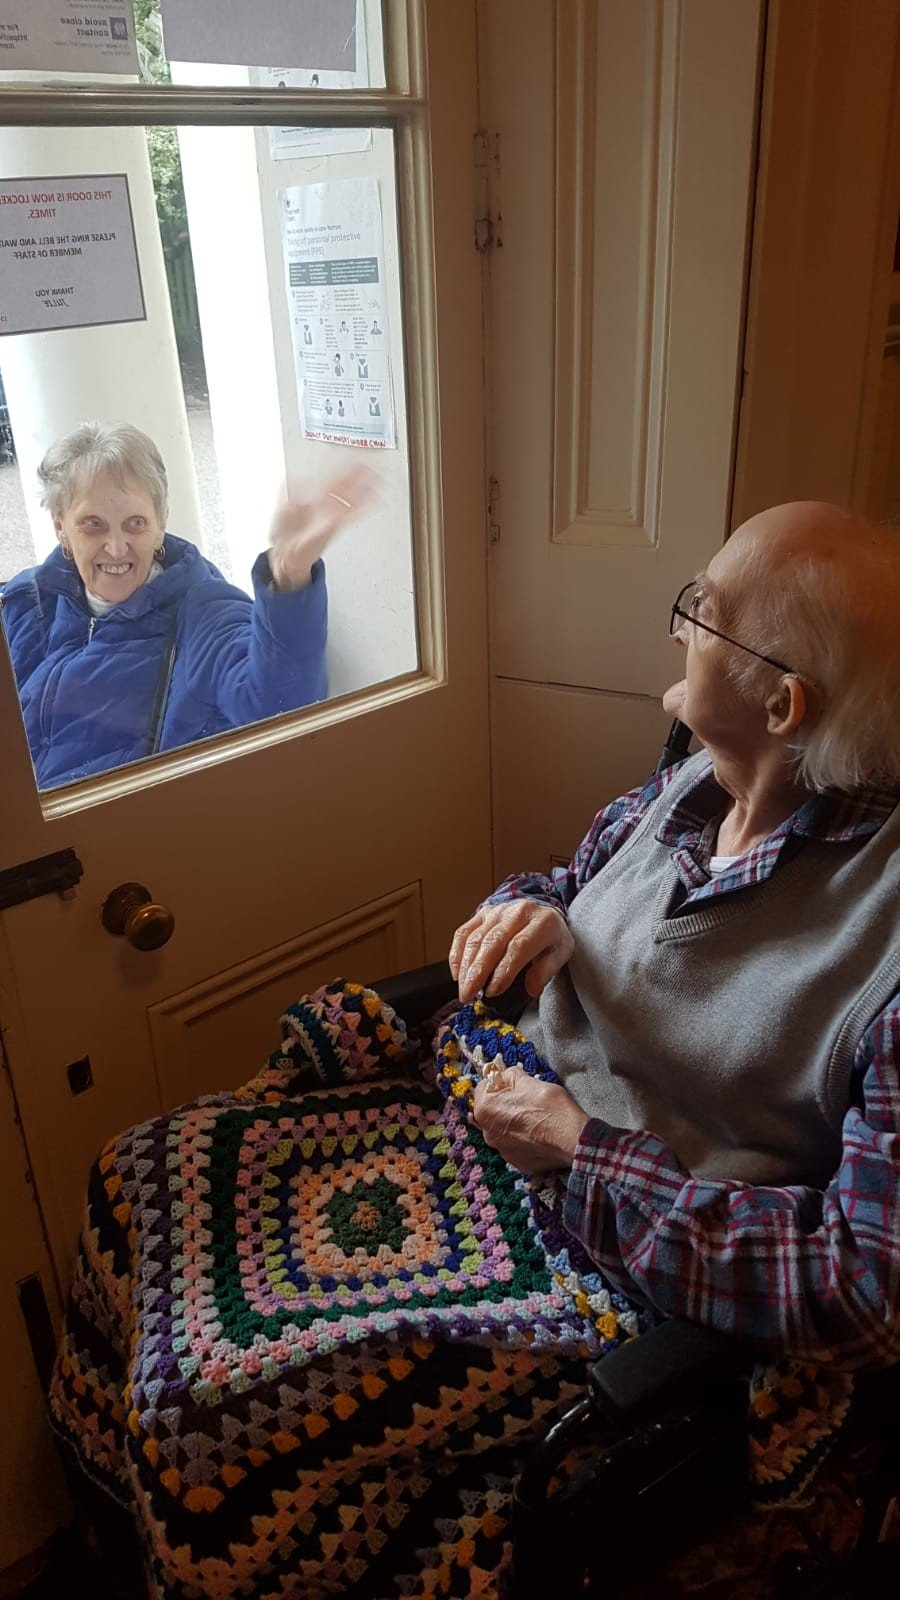 A Window Visit From Loved Ones - 06.02.21